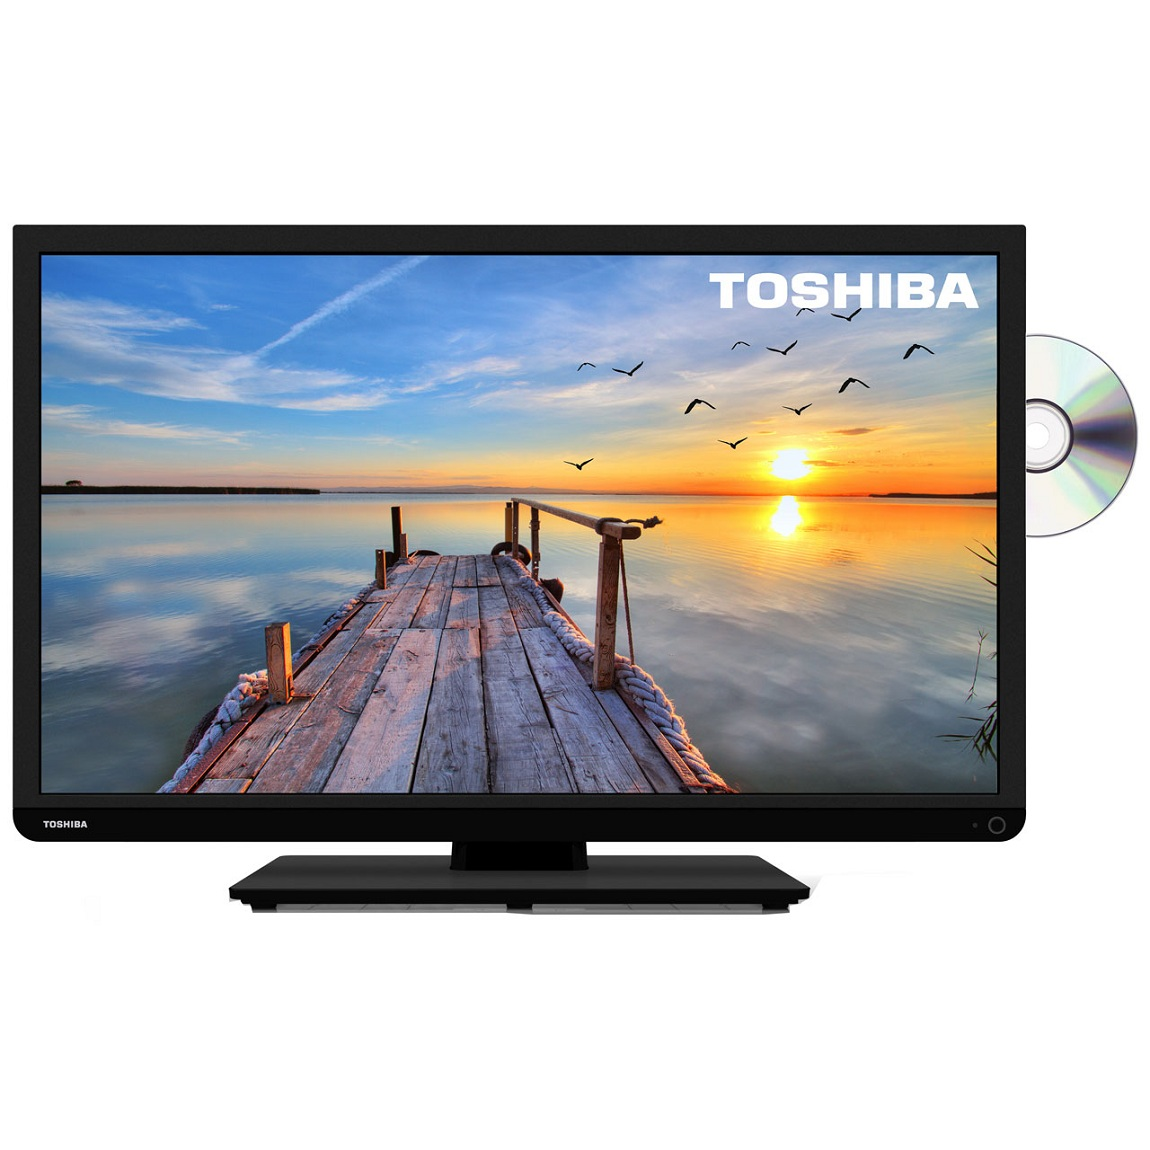 toshiba 32d1333db 32 inch hd ready led tv dvd combi built in freeview usb black ebay. Black Bedroom Furniture Sets. Home Design Ideas